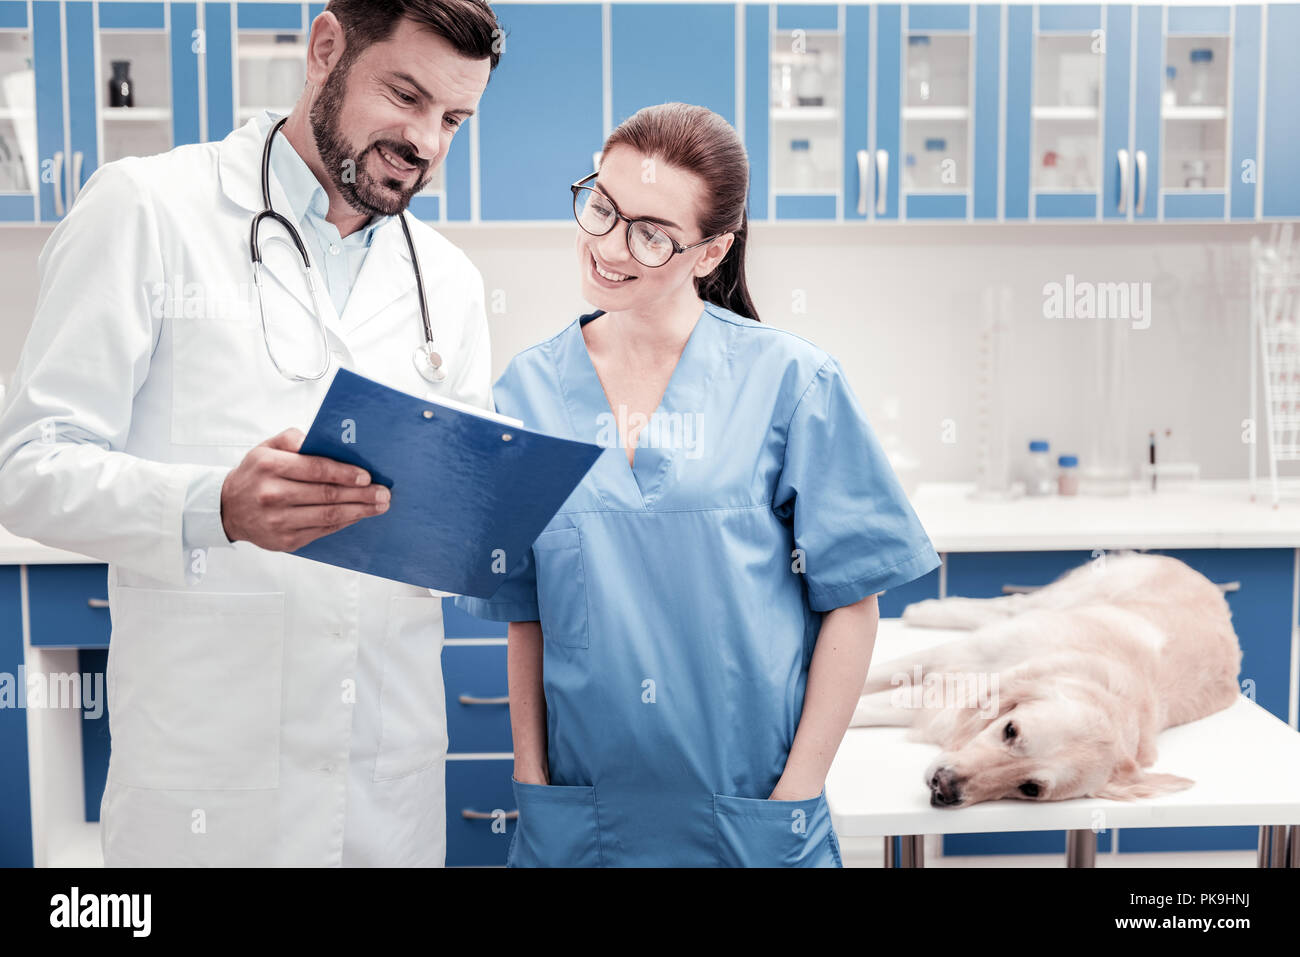 Charming assistant listening to her colleague - Stock Image